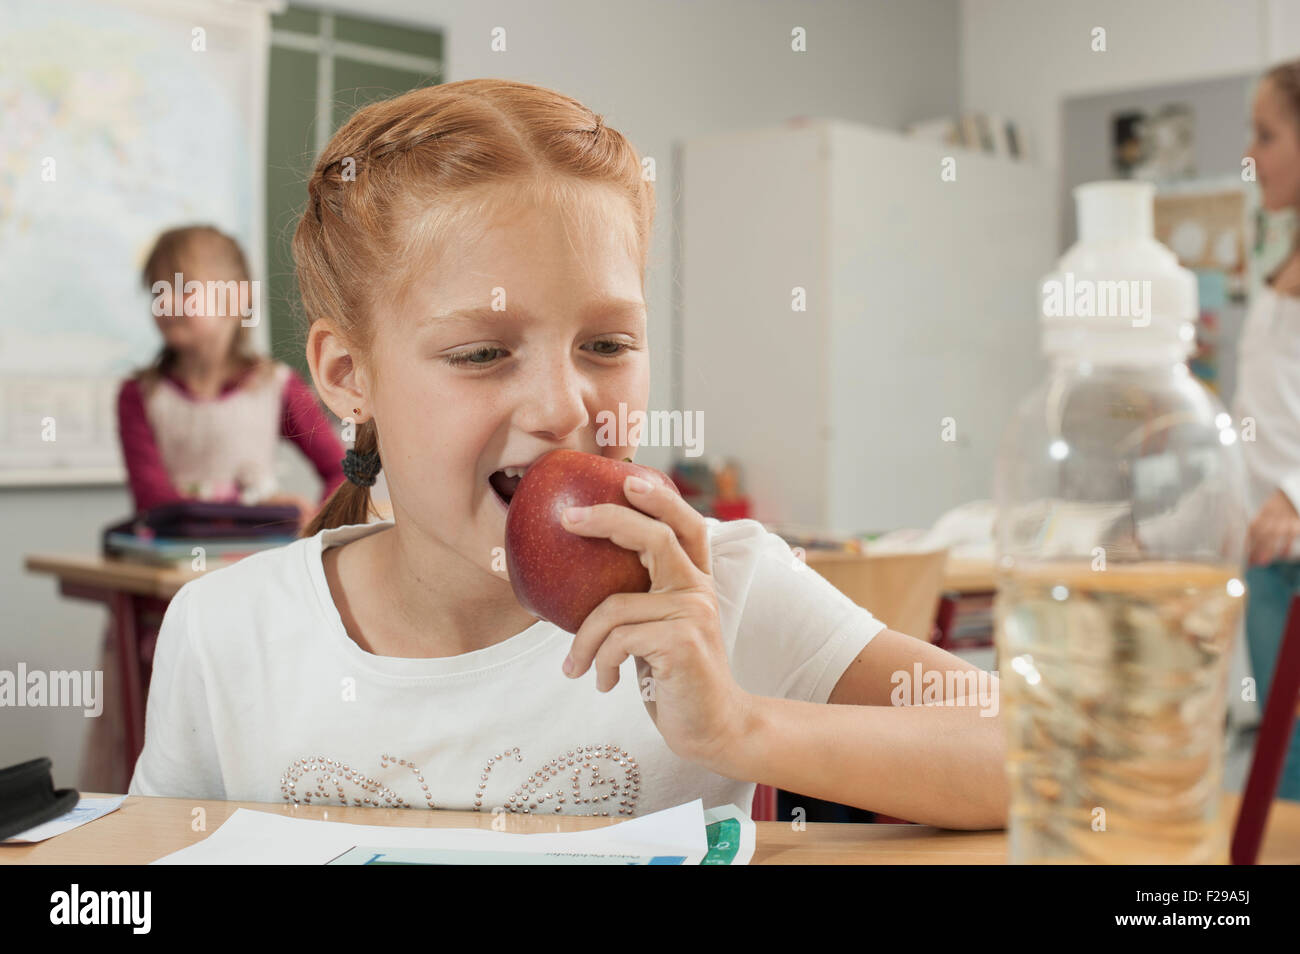 Close-up of a schoolgirl eating an apple in classroom, Munich, Bavaria, Germany - Stock Image